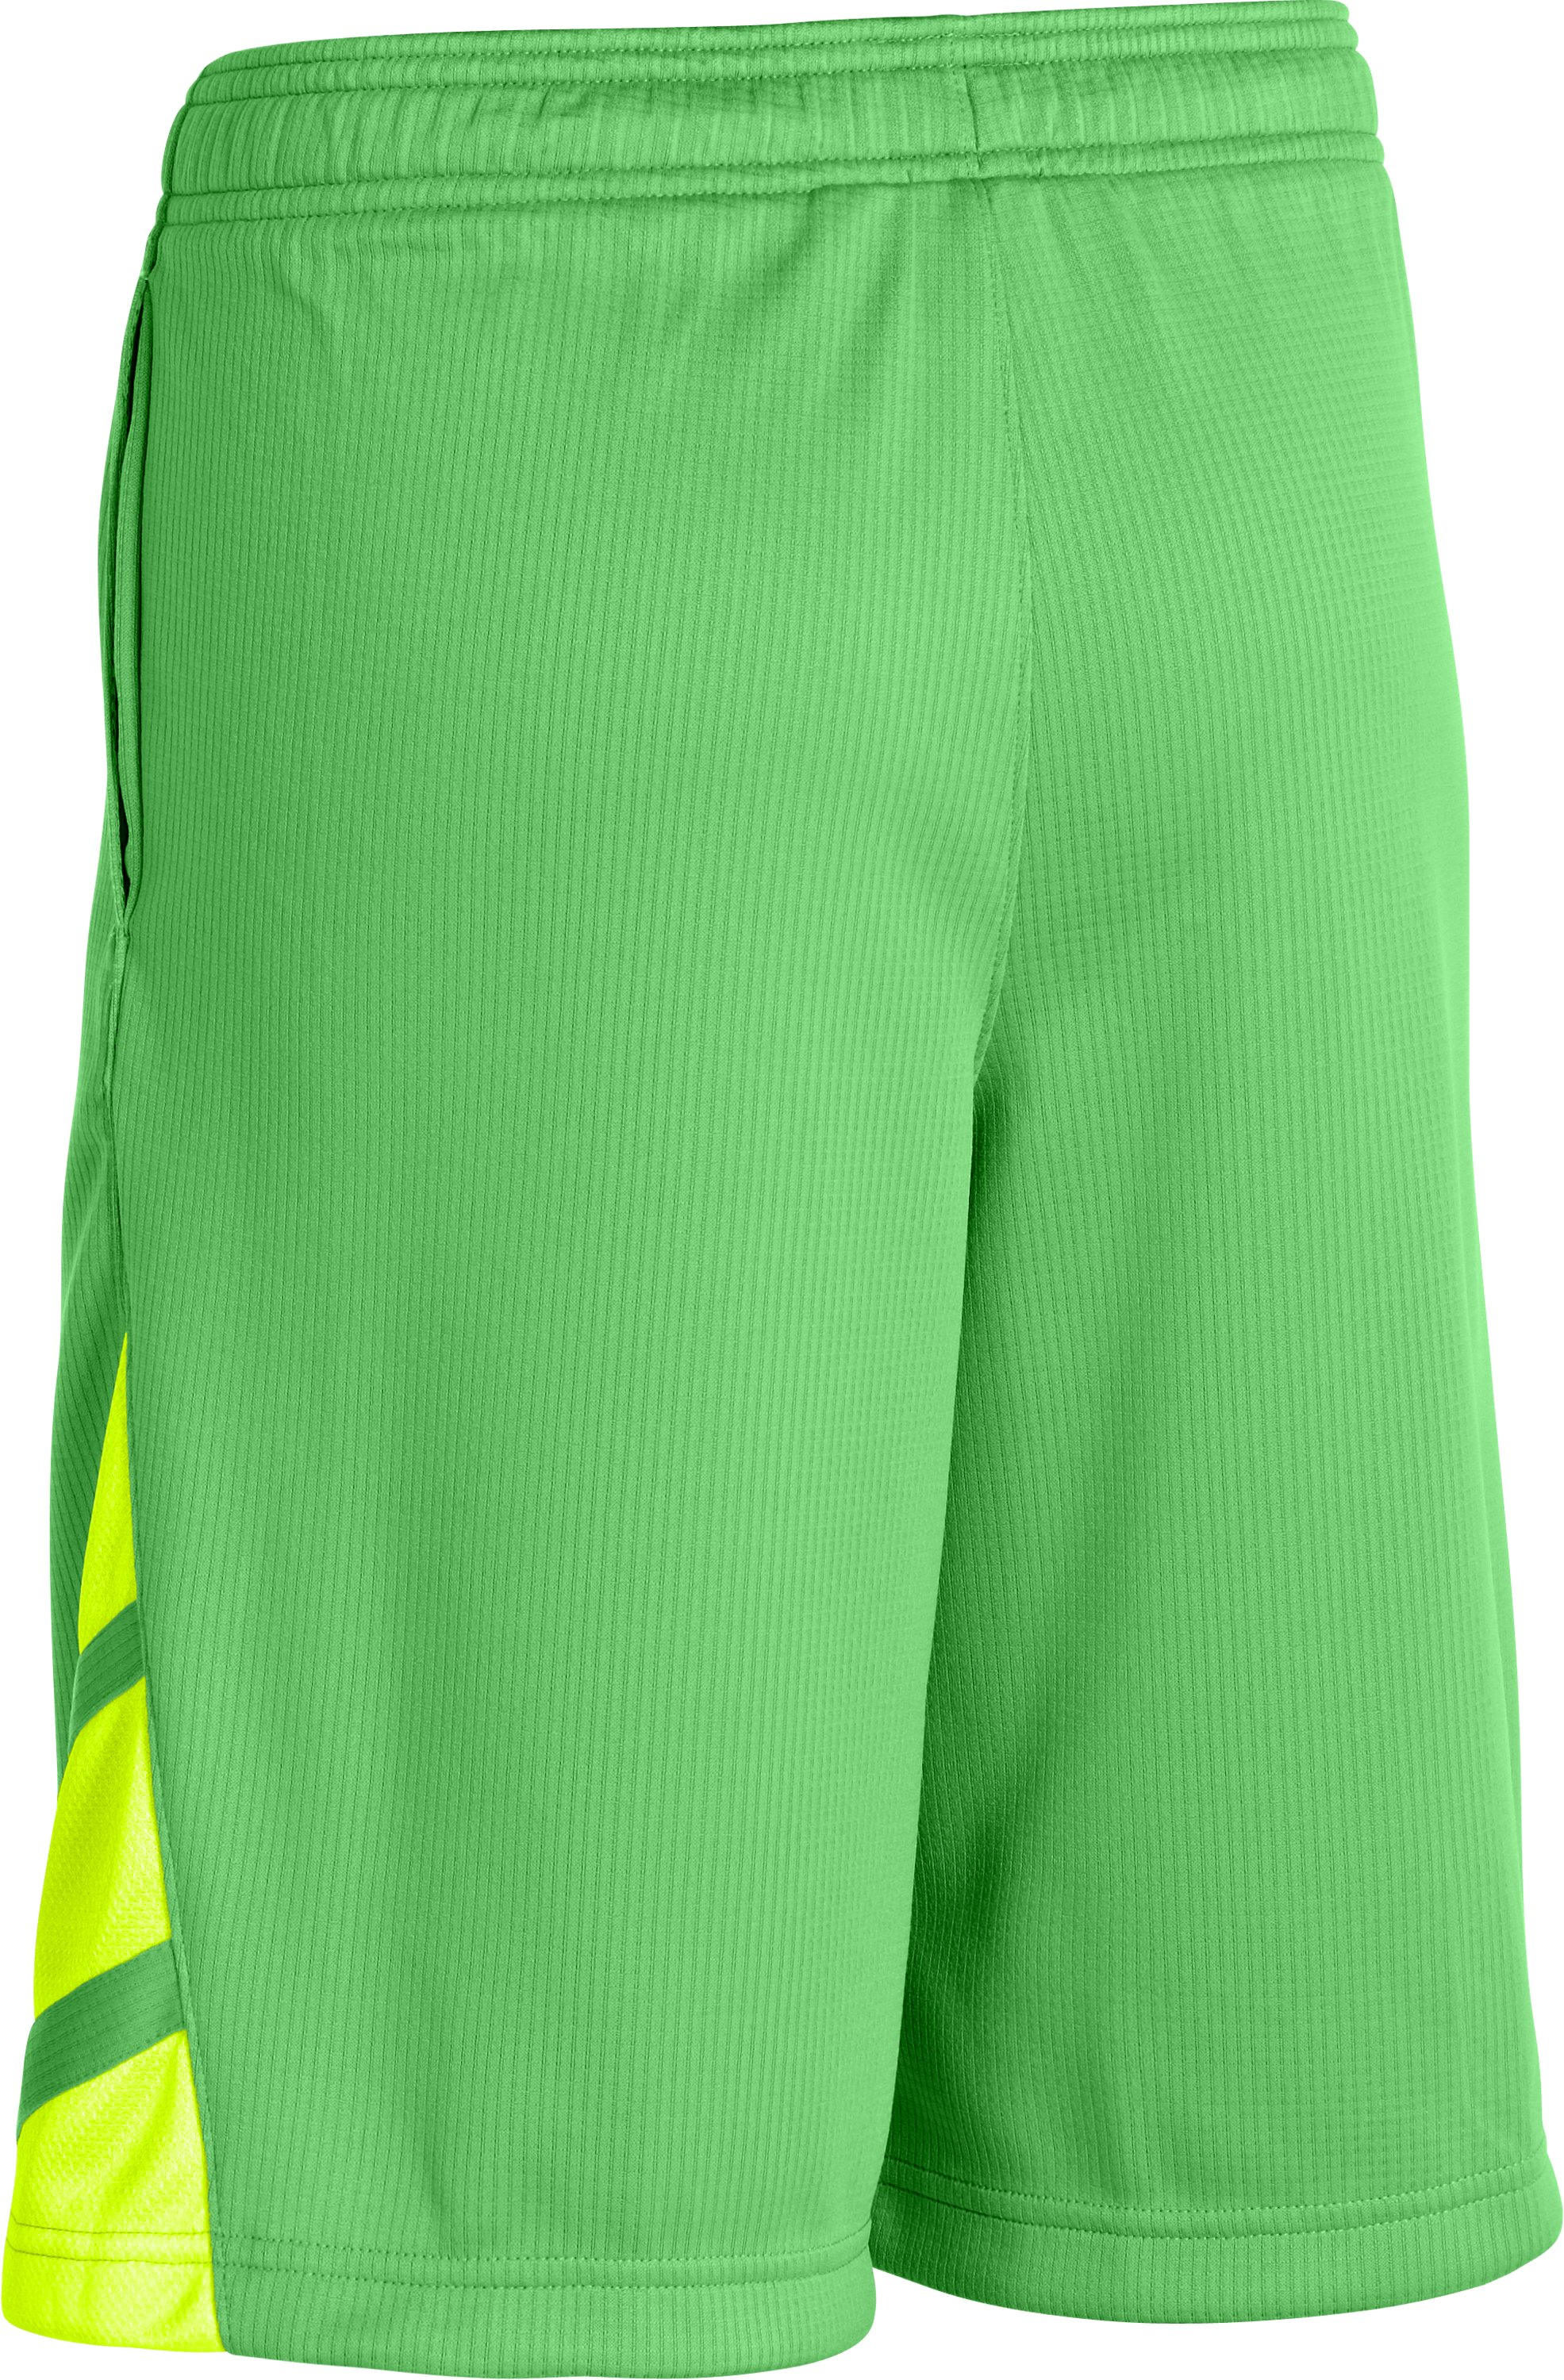 Boys' UA Big Timin Shorts, Lizard,